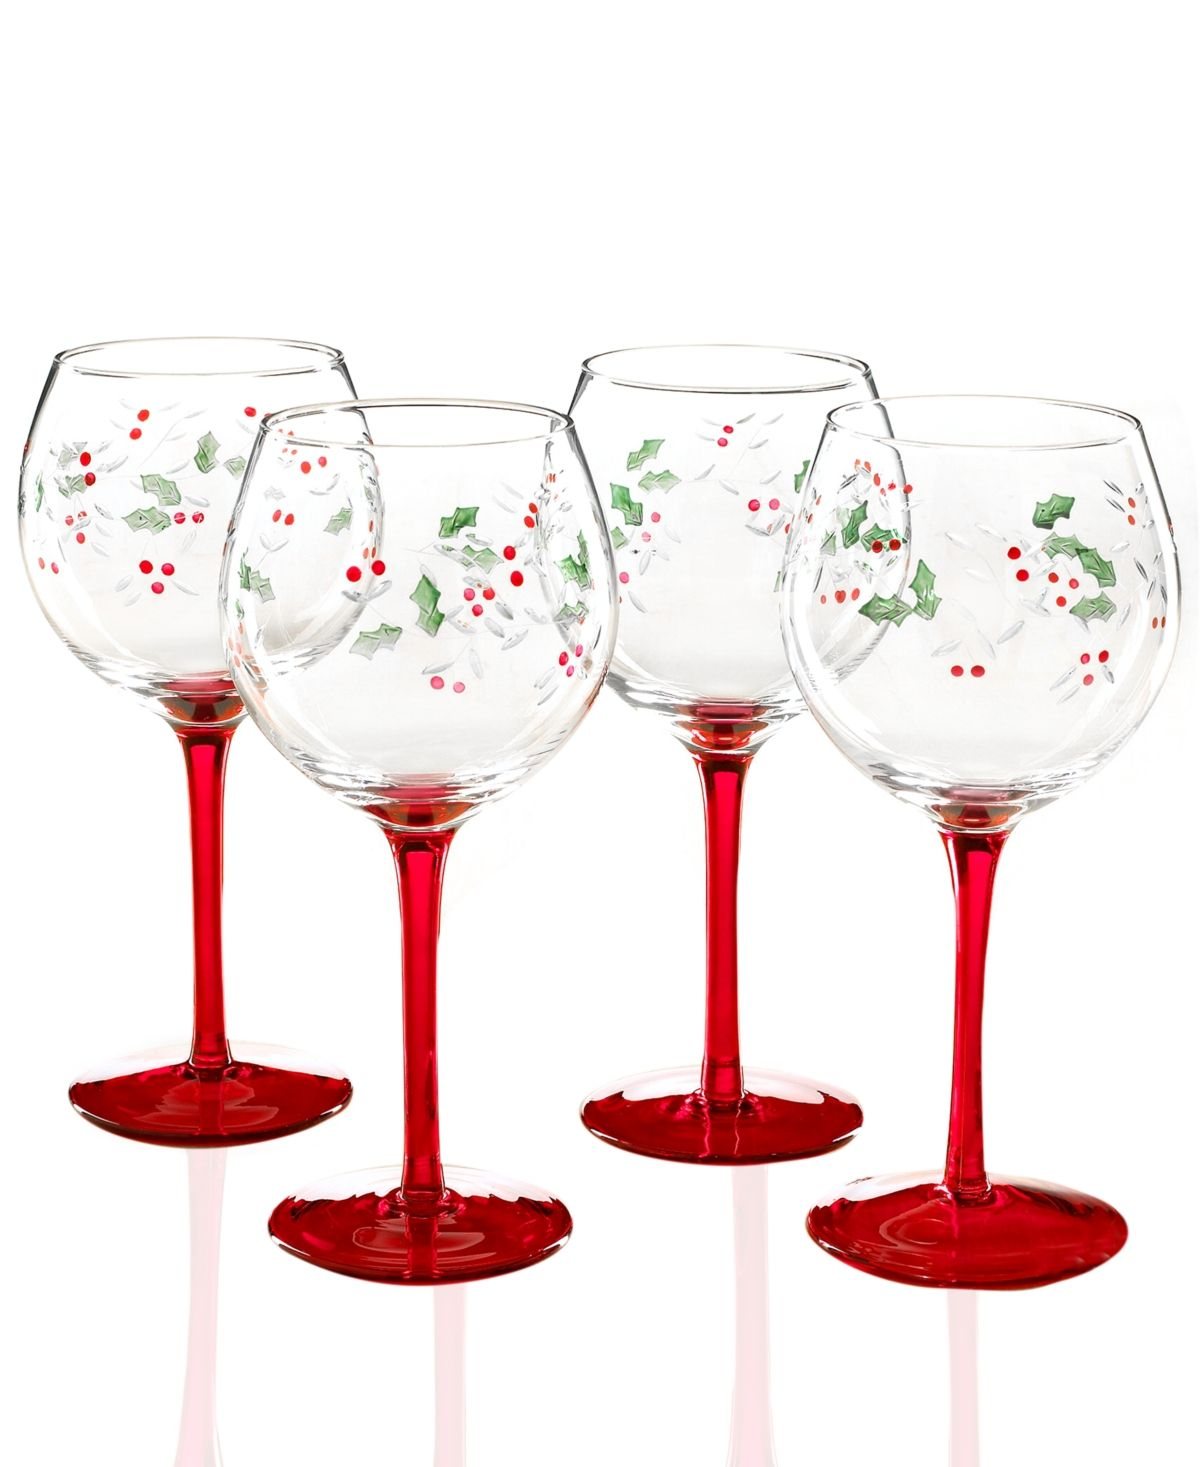 Pfaltzgraff Winterberry Dinnerware Collection Reviews Dinnerware Dining Macy S Painted Wine Glasses Christmas Wine Glass Crafts Christmas Wine Glasses